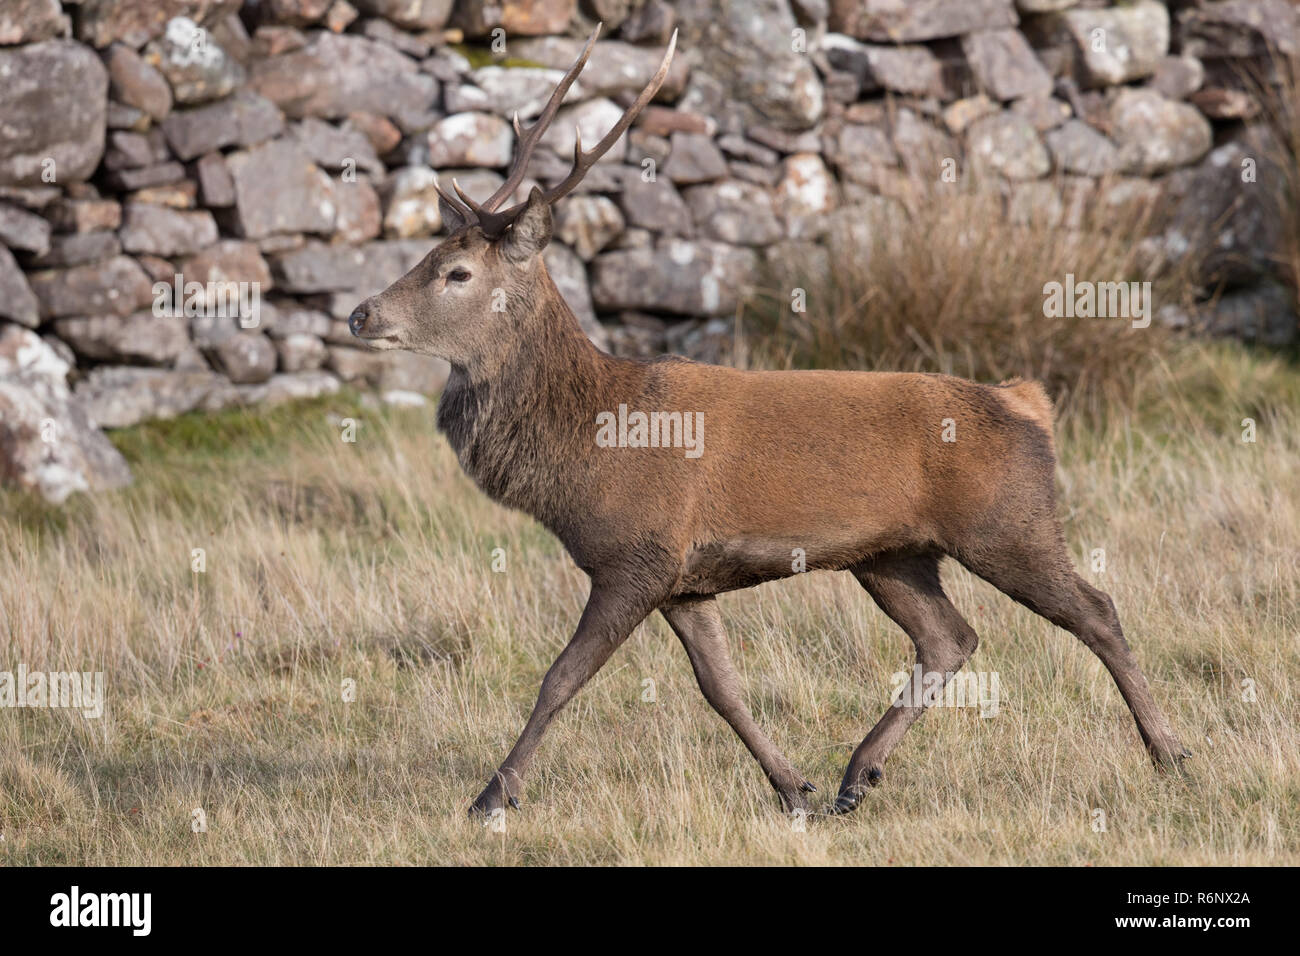 Red deer stag in the Highlands of Scotland Stock Photo